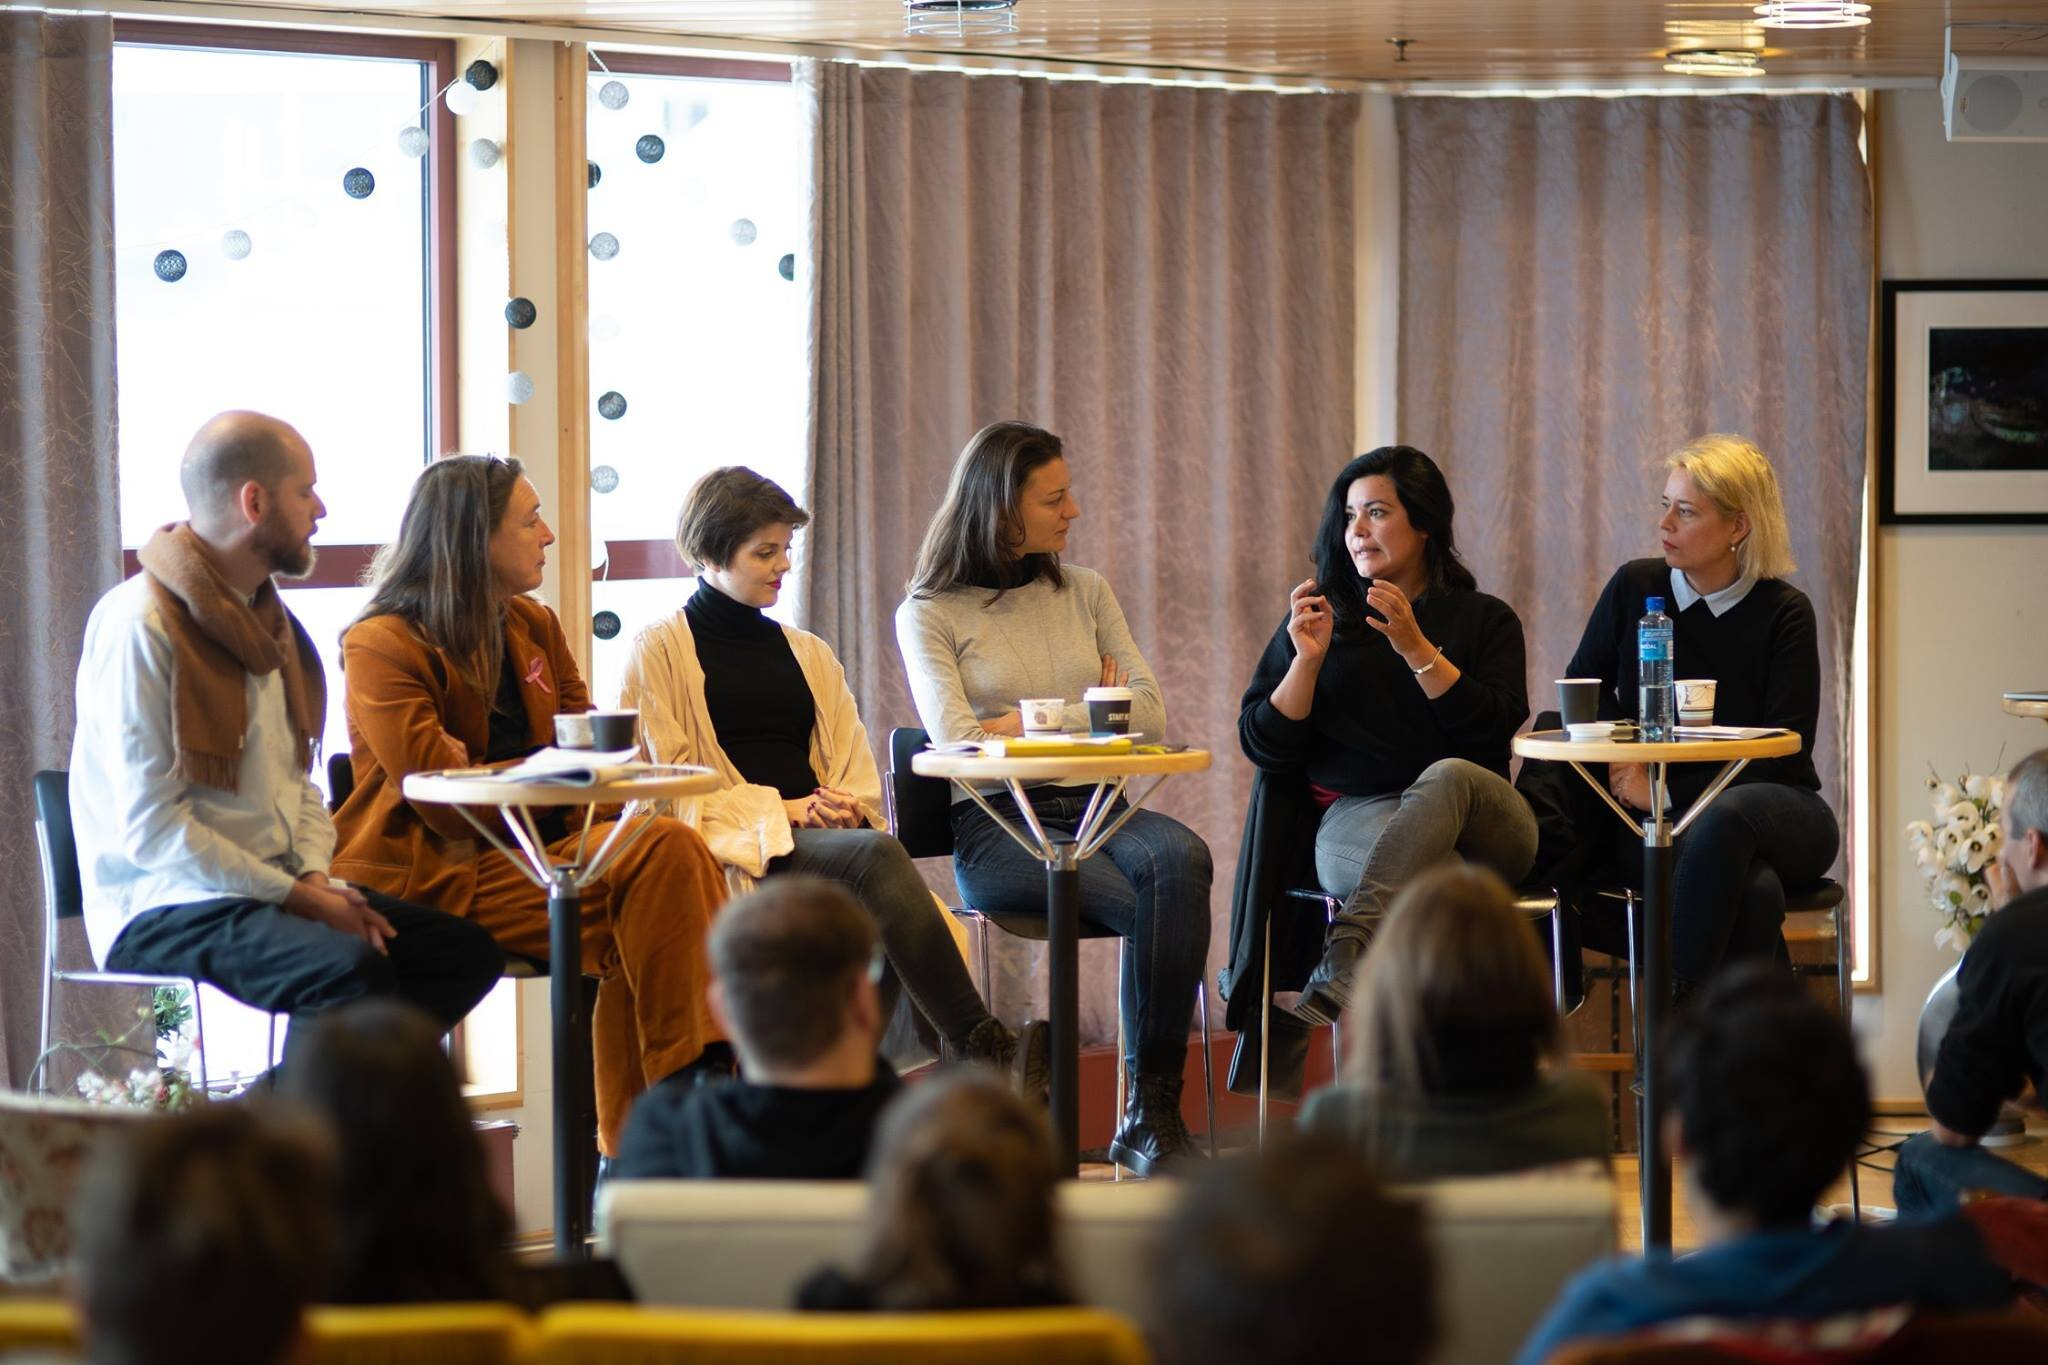 From the panel discusiion at AMIFF 2018. From the left: Mike Sperlinger, Sabrina van der Ley, Ingeborg Lindahl, Vanina Saracino, Daniela Arriado, Helga Marie Nordby